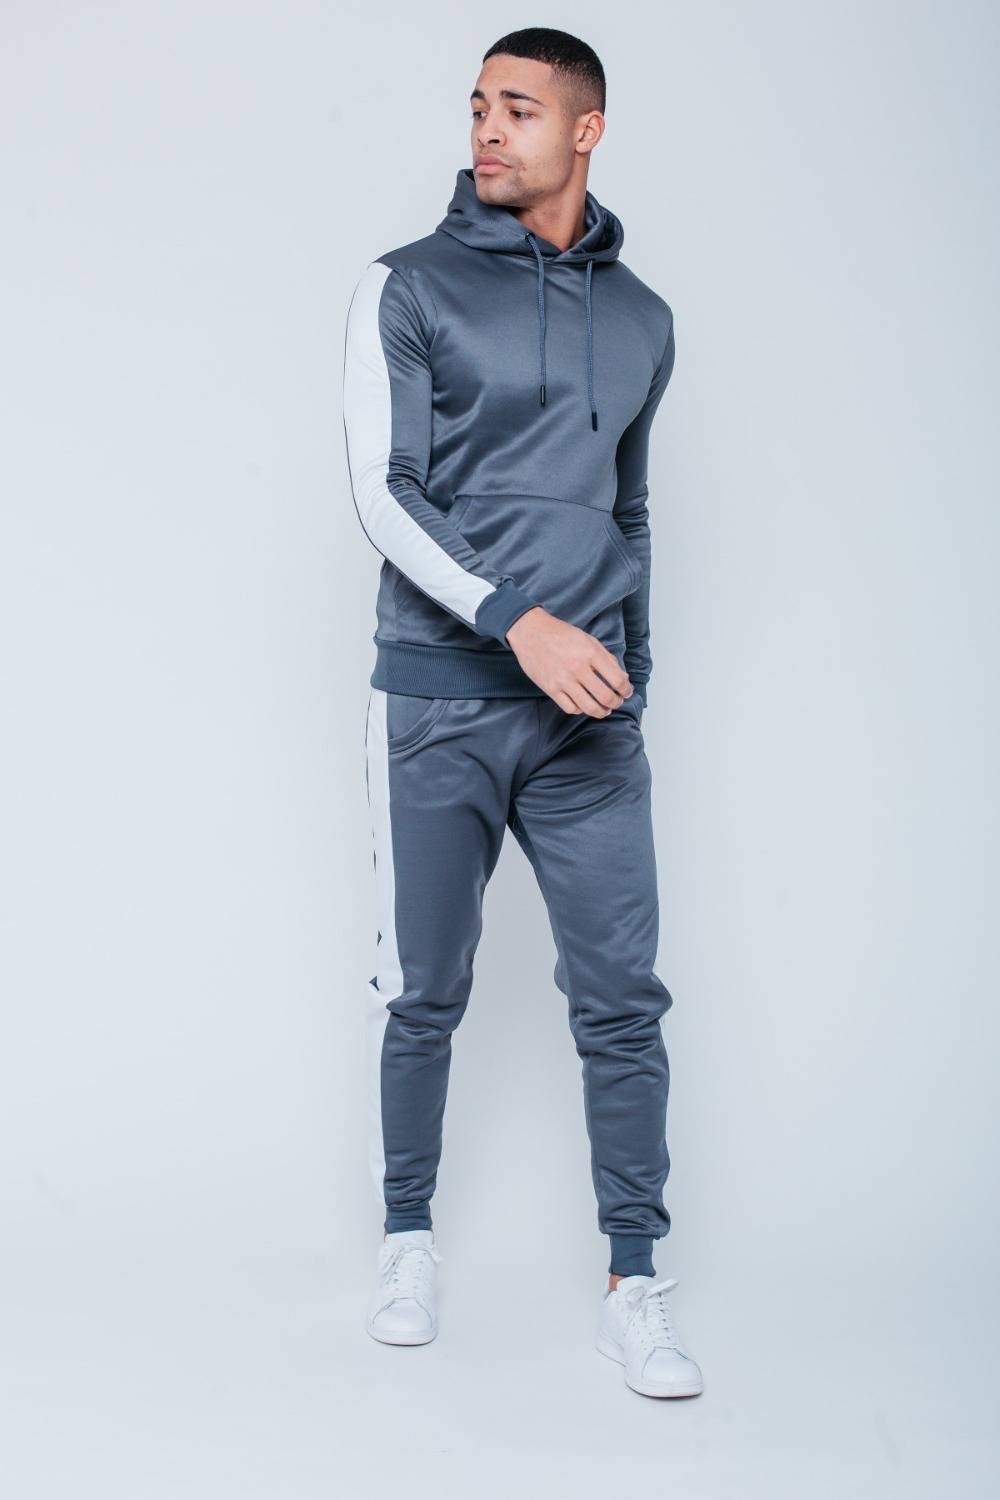 Black White Tape Pouch Pullover Tracksuit  J5 Fashion